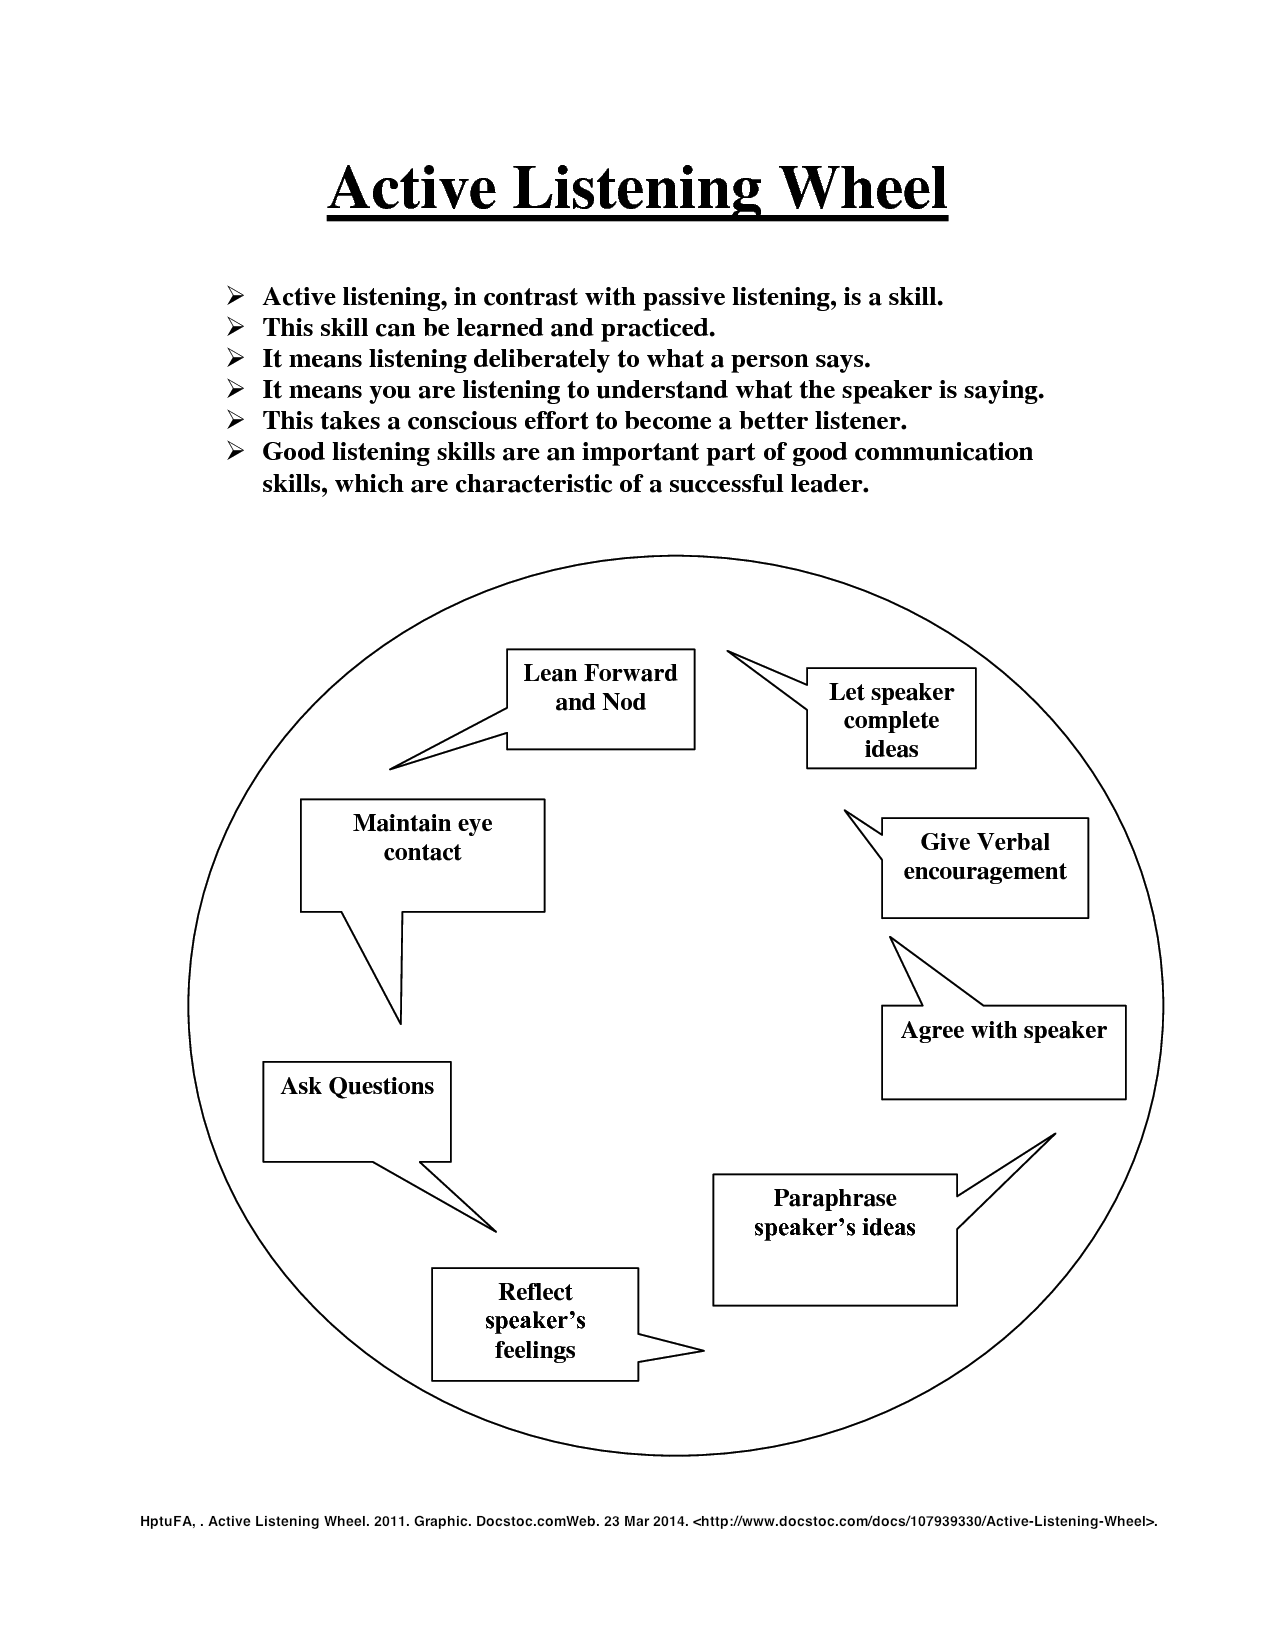 worksheet Active Listening Skills Worksheets 78 images about listening skills on pinterest communication math sheets and problem solving